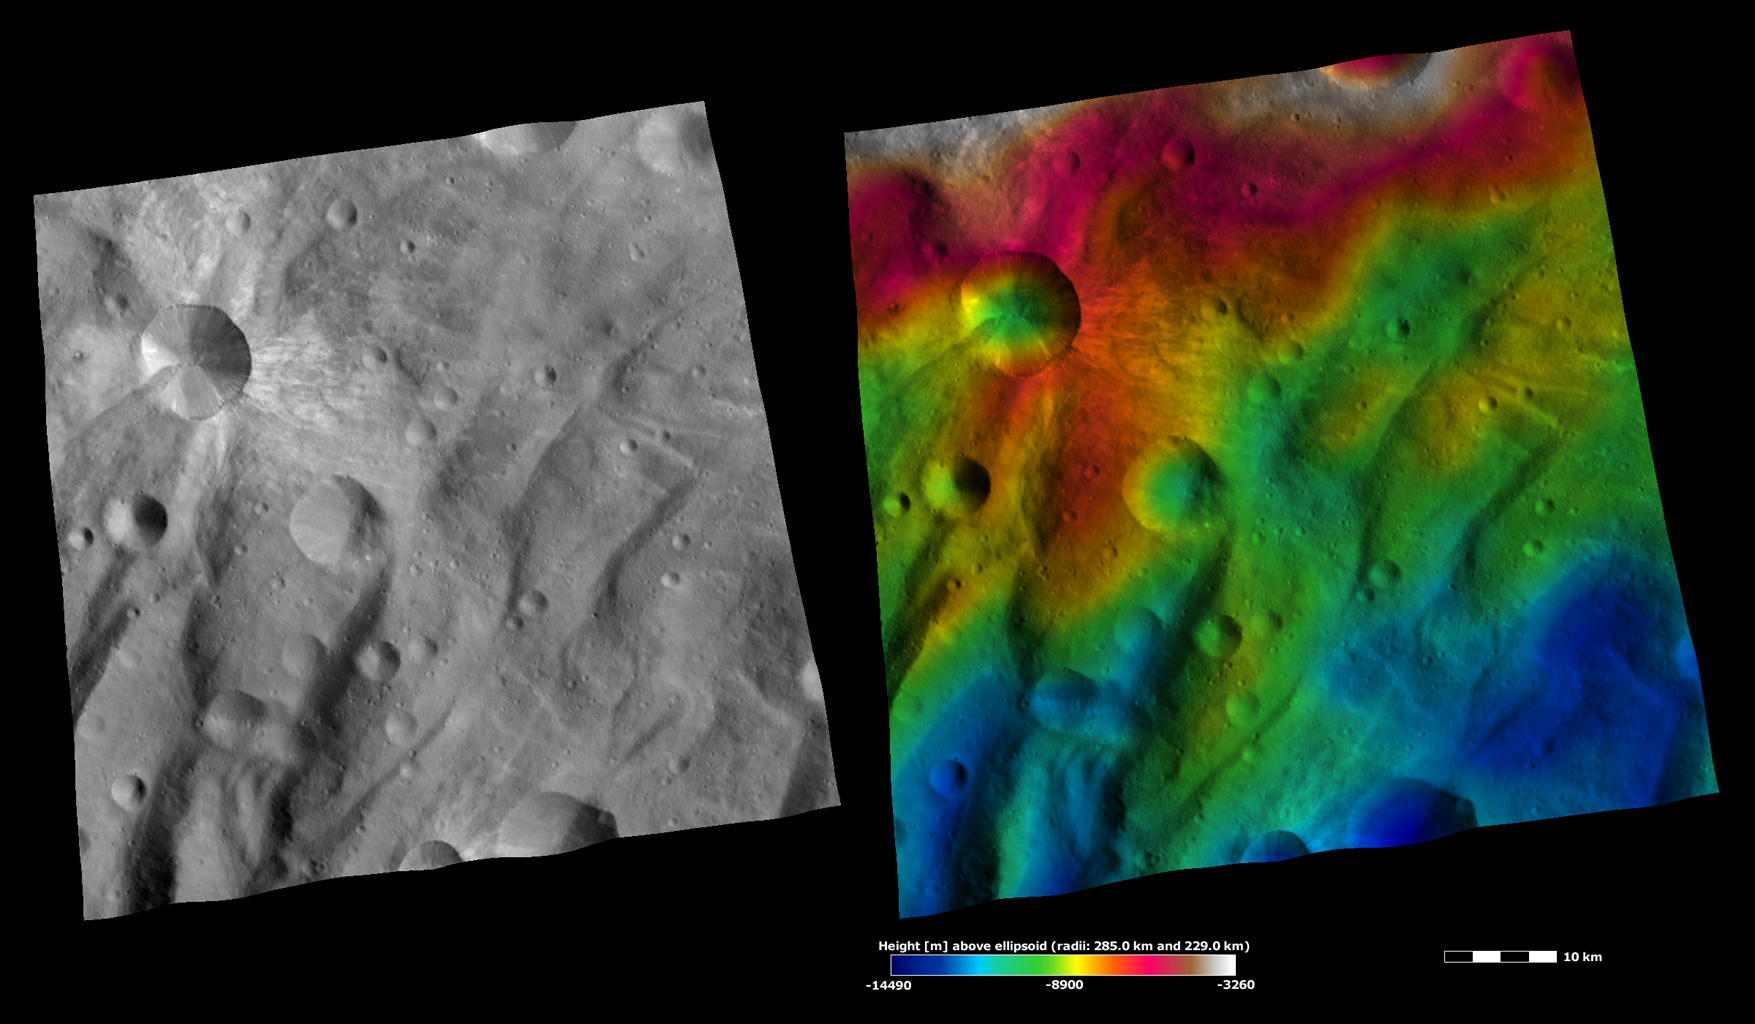 Apparent Brightness and Topography Images of Canuleia Crater